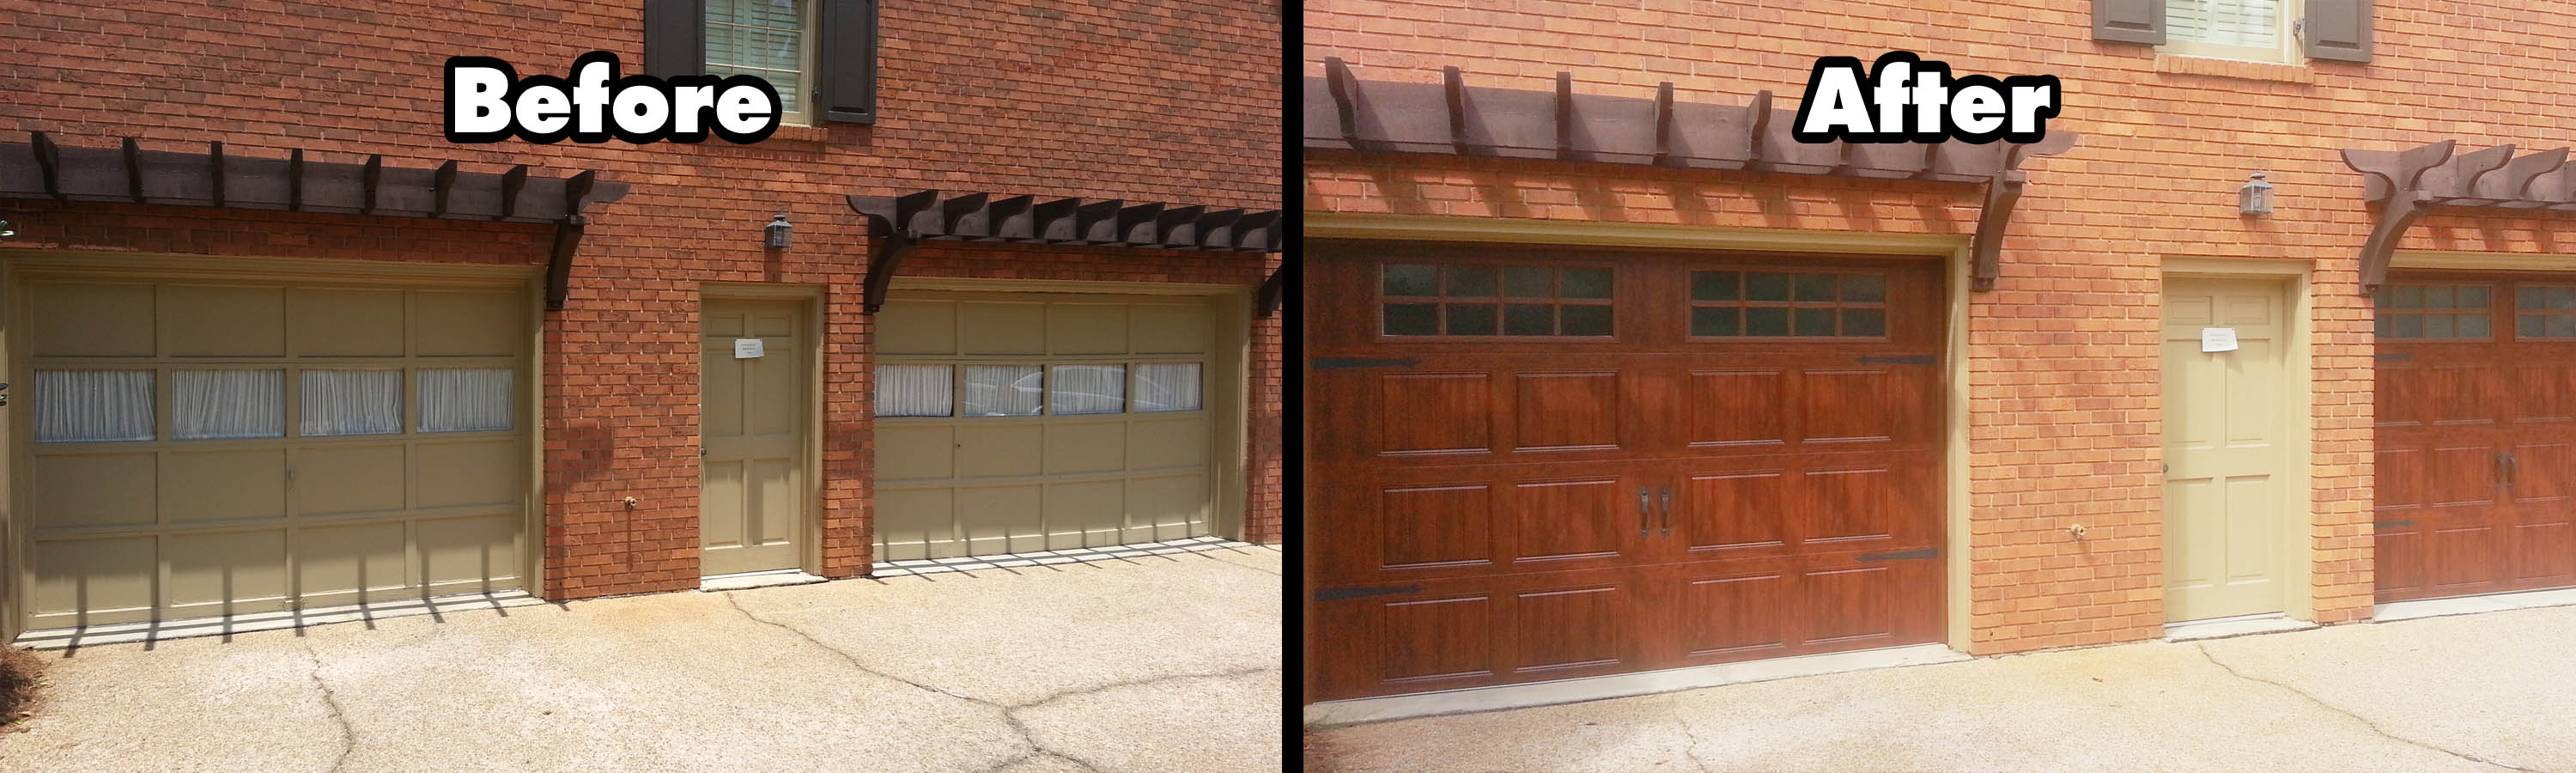 Garage doors gallery prestige garage door services serving 9 rubansaba